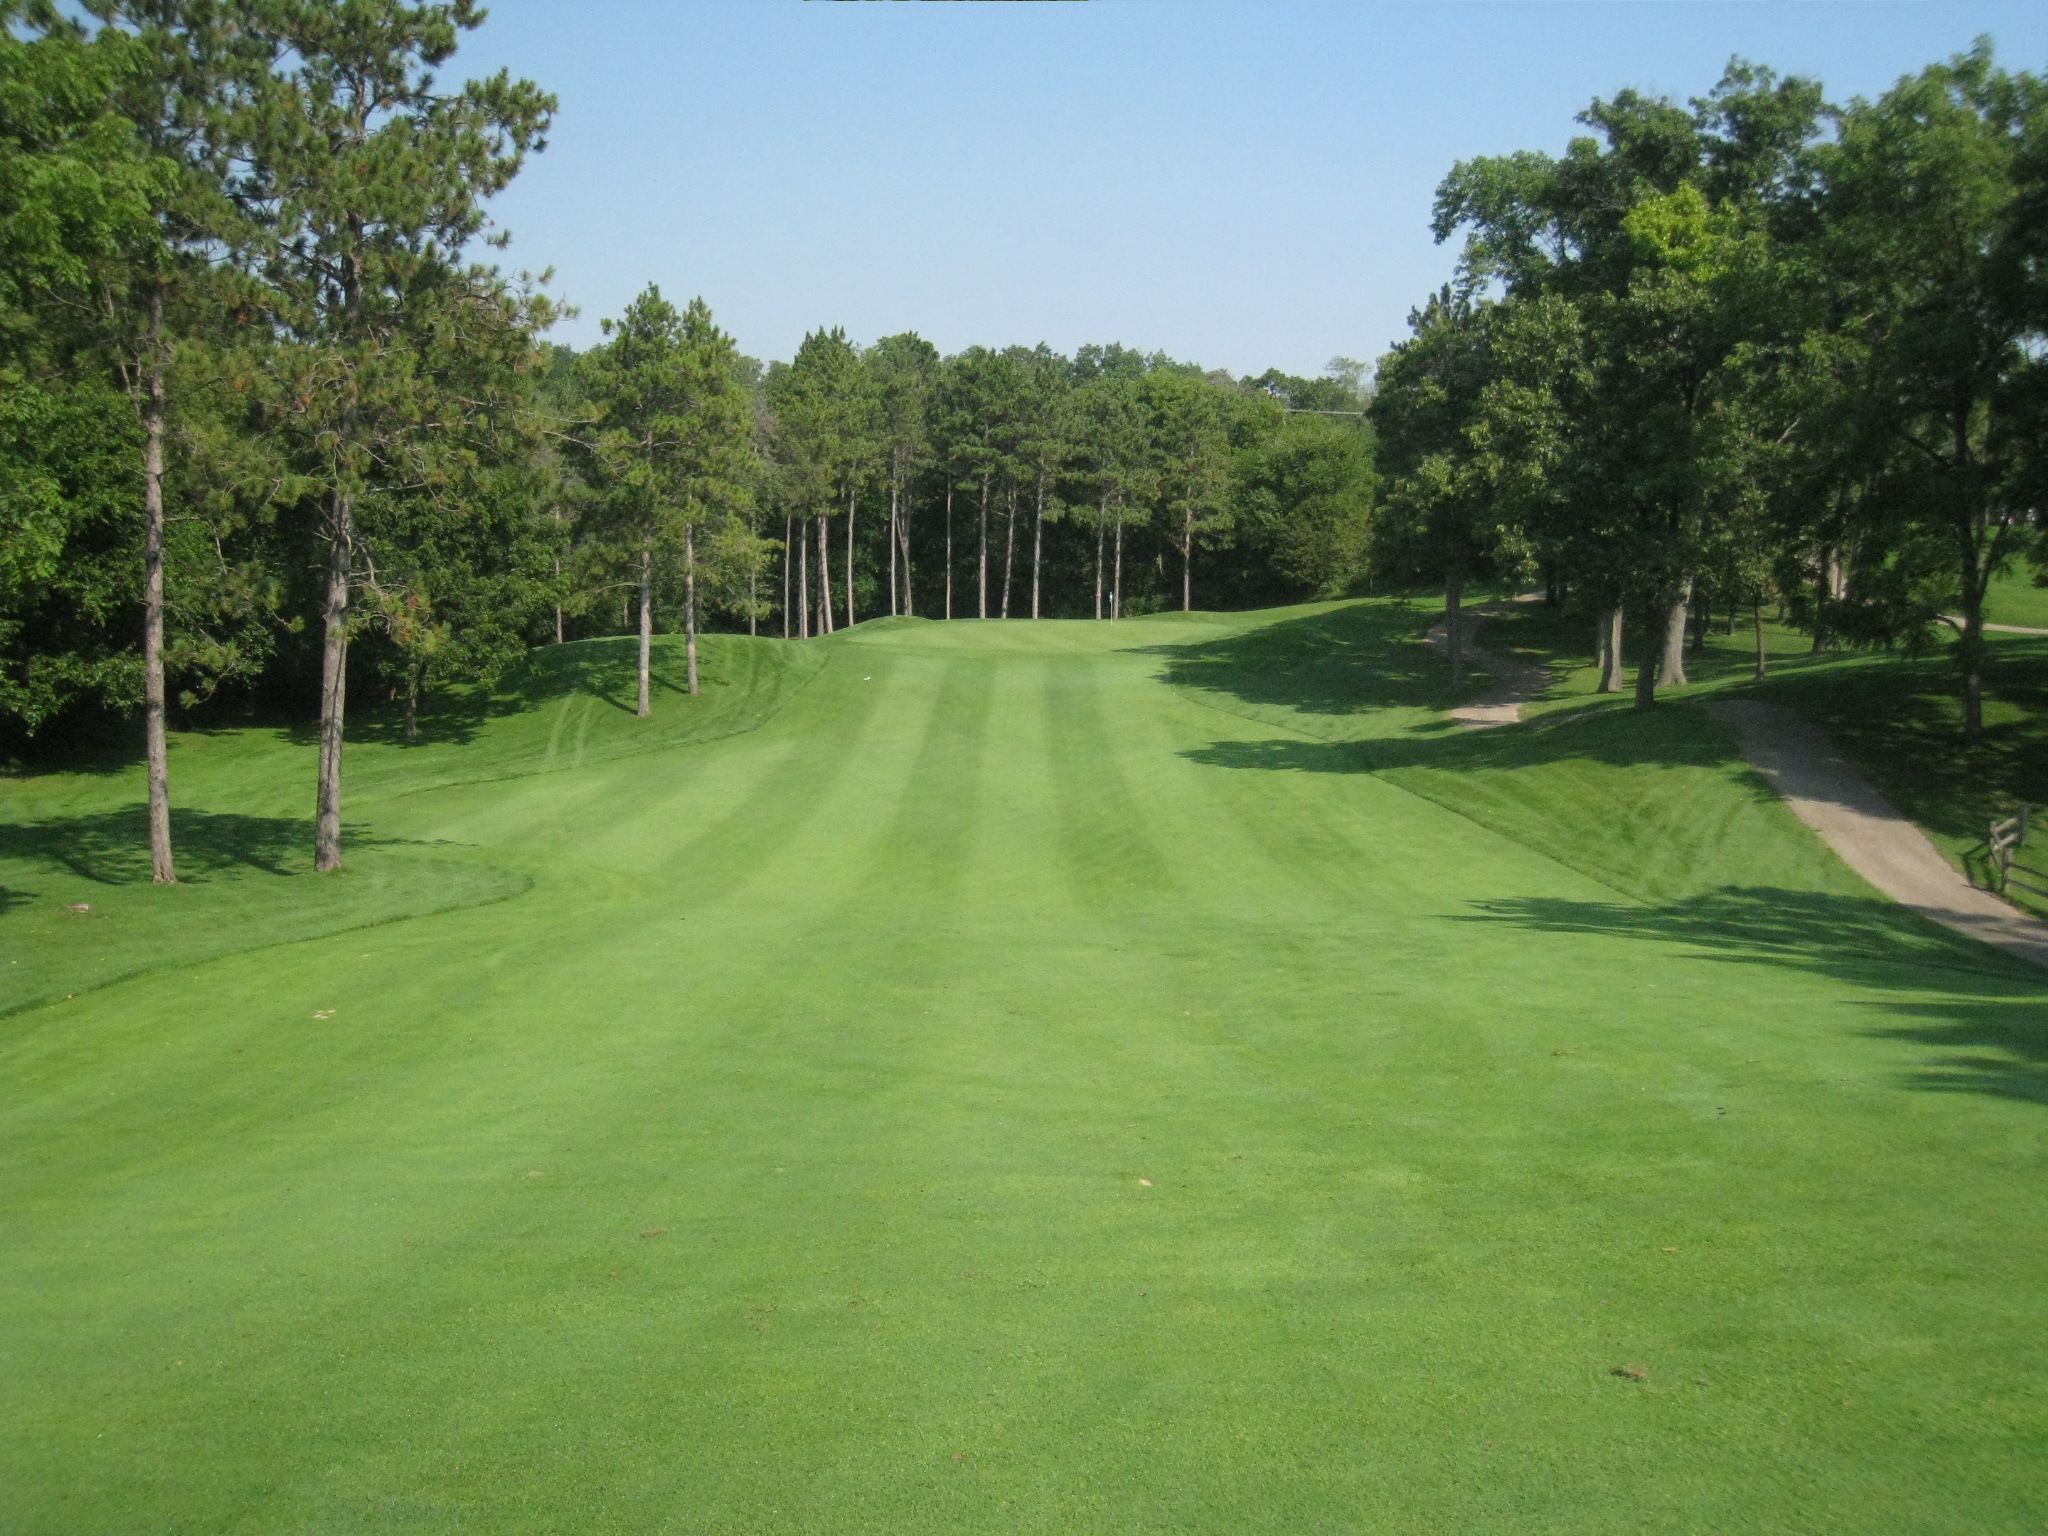 Fairway_%28golf%29.jpg